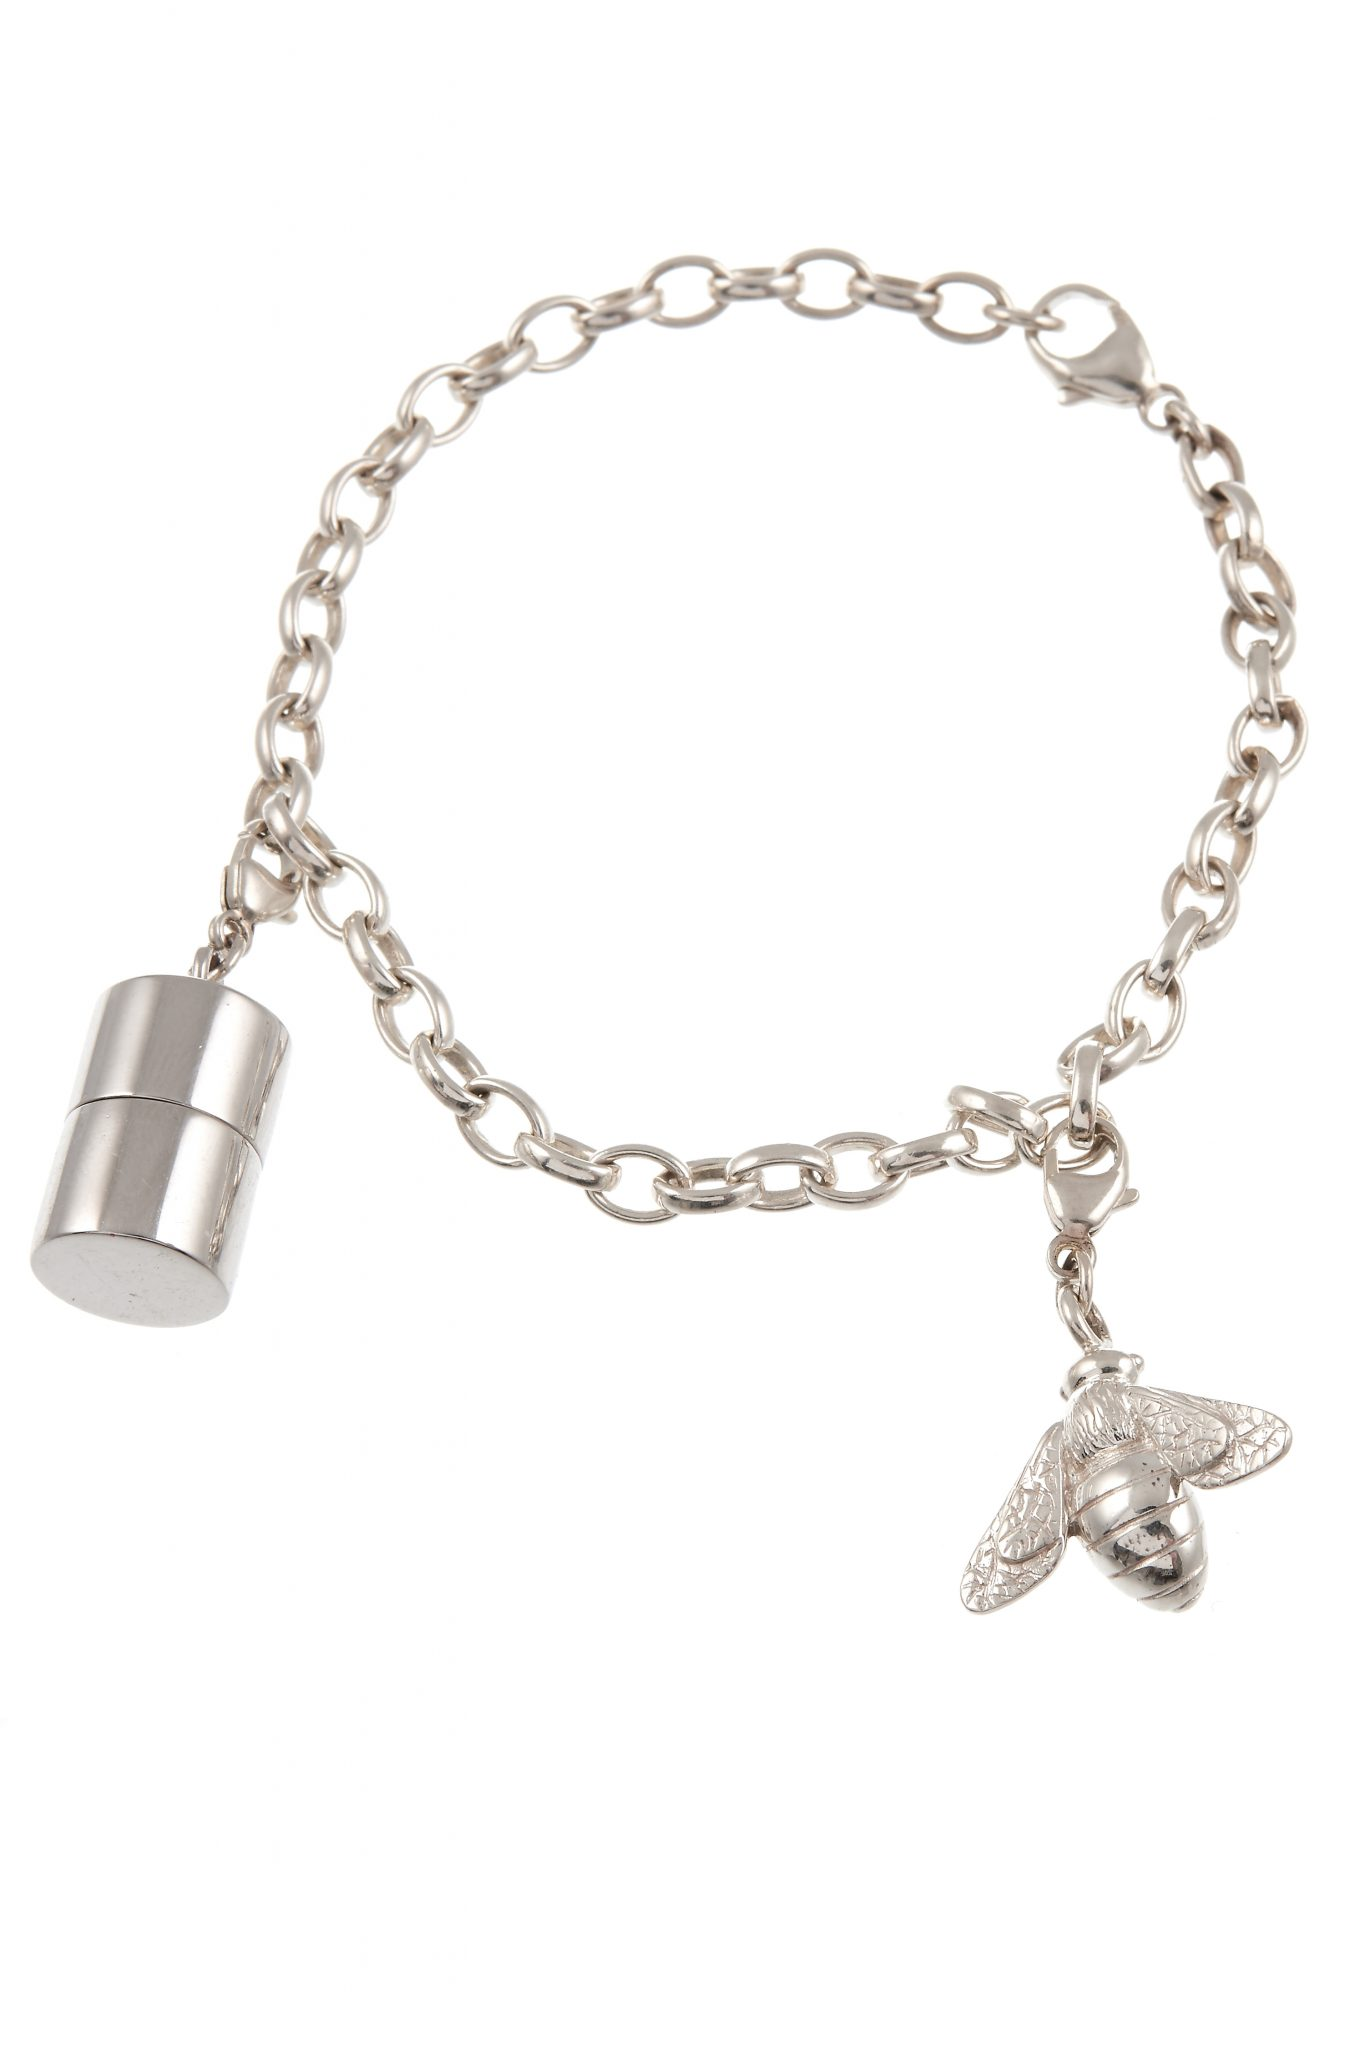 silver bracelet necklace memories charm product category jewellery